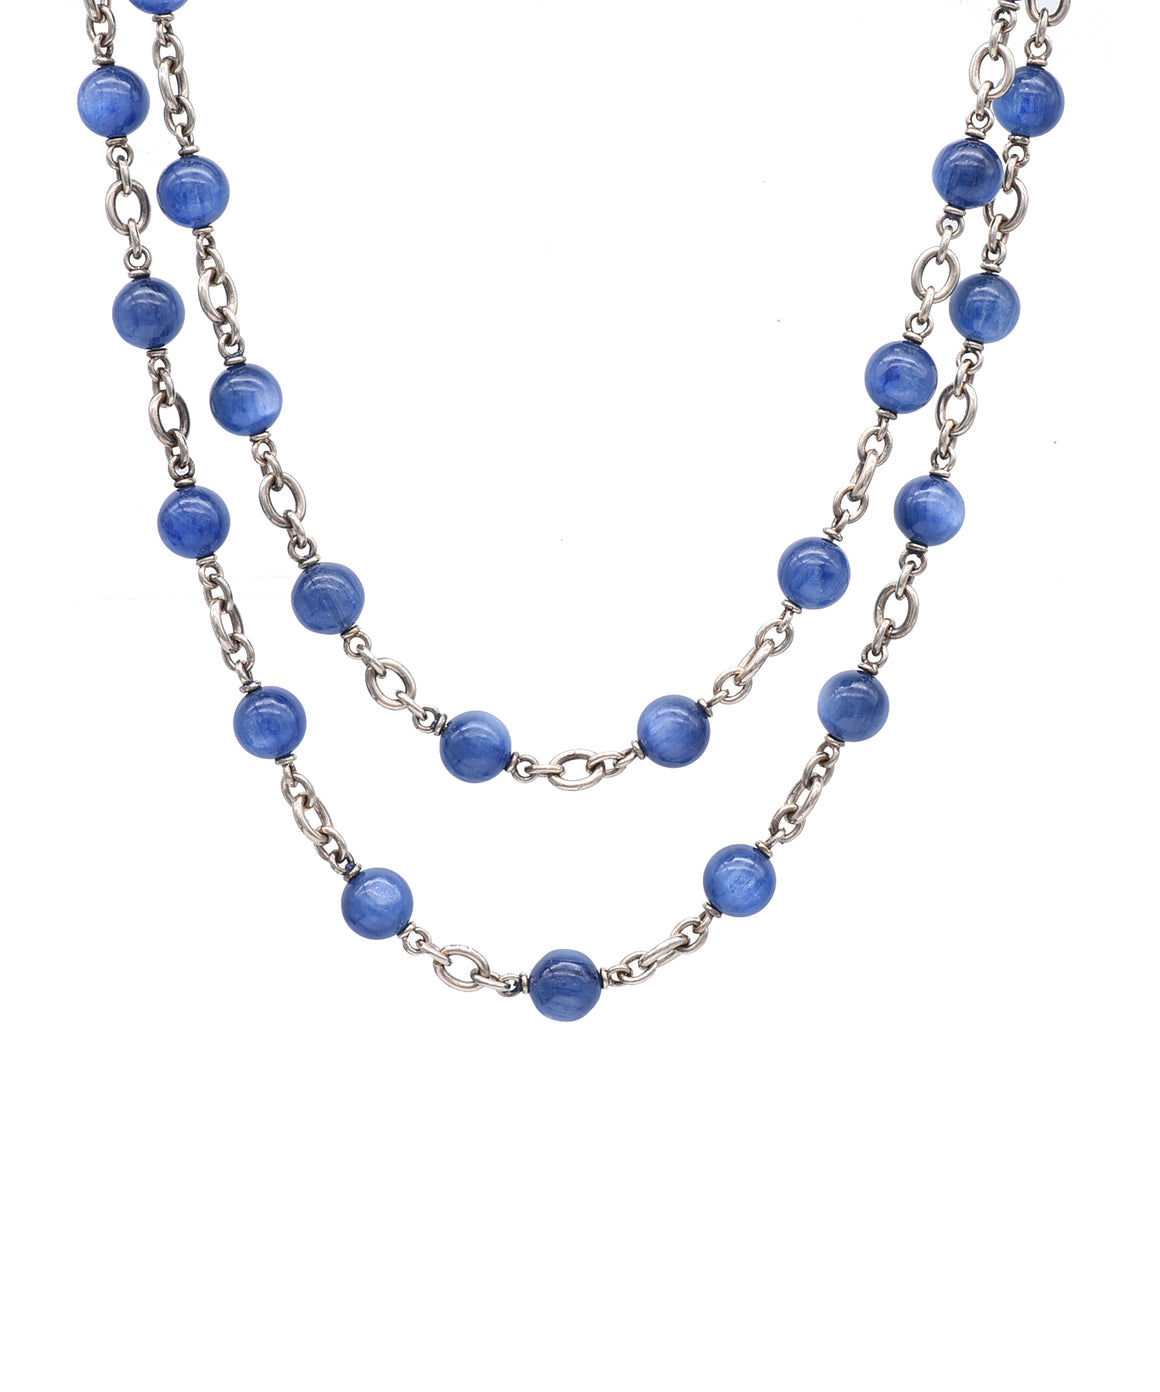 Kyanite Bead Necklace - Lesley Ann Jewels